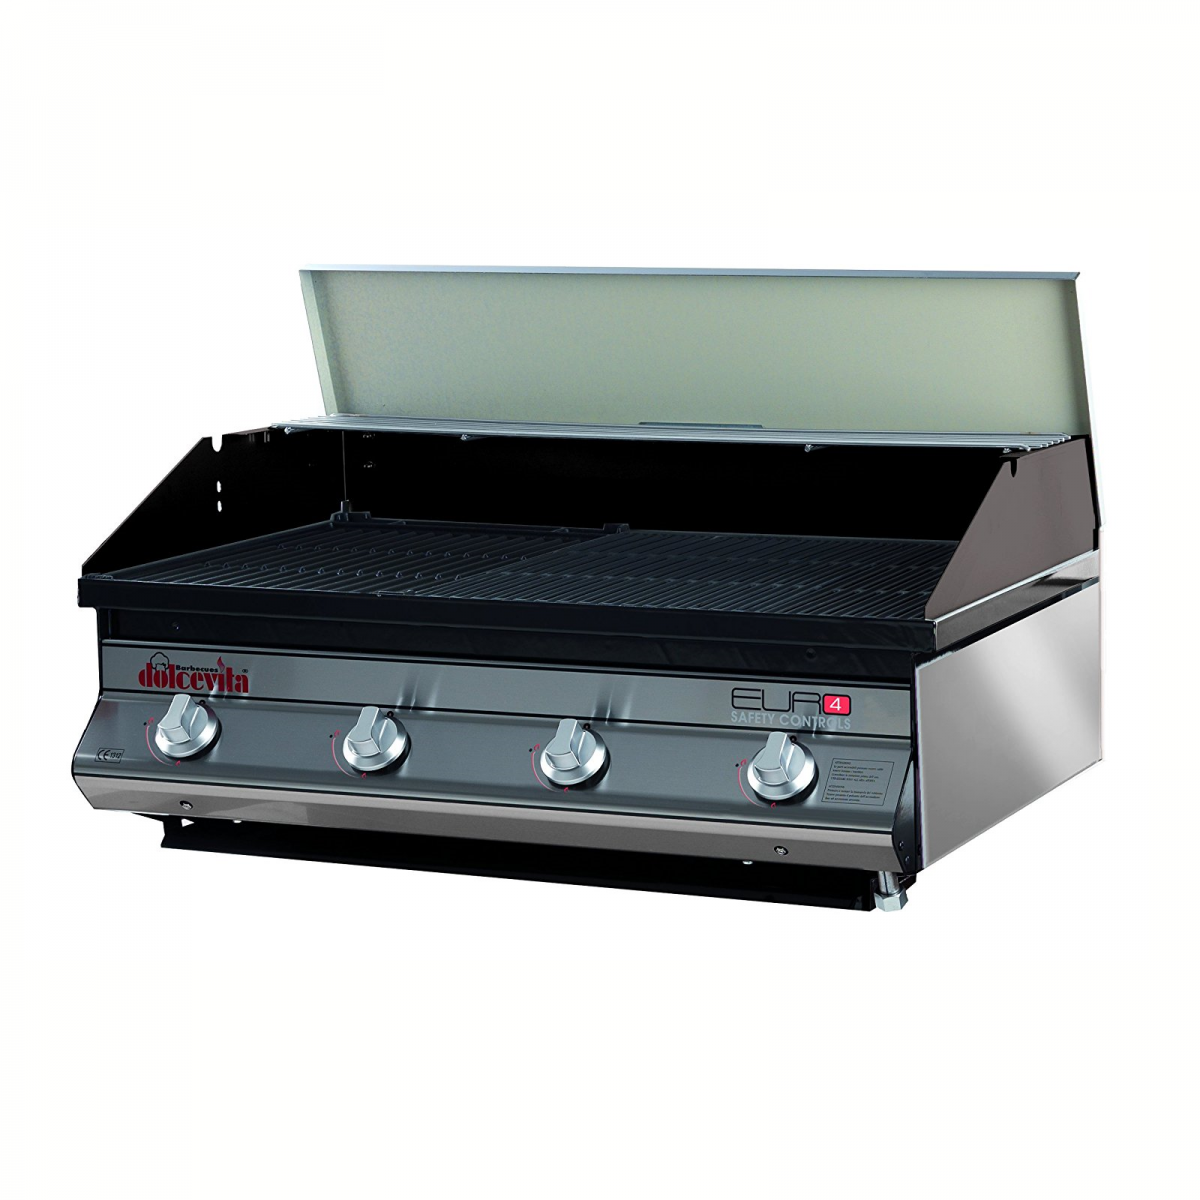 separation shoes b1901 5b747 BARBECUE A GAS DOLCEVITA EURO 4 DA INCASSO | Il Mondo del Barbecue